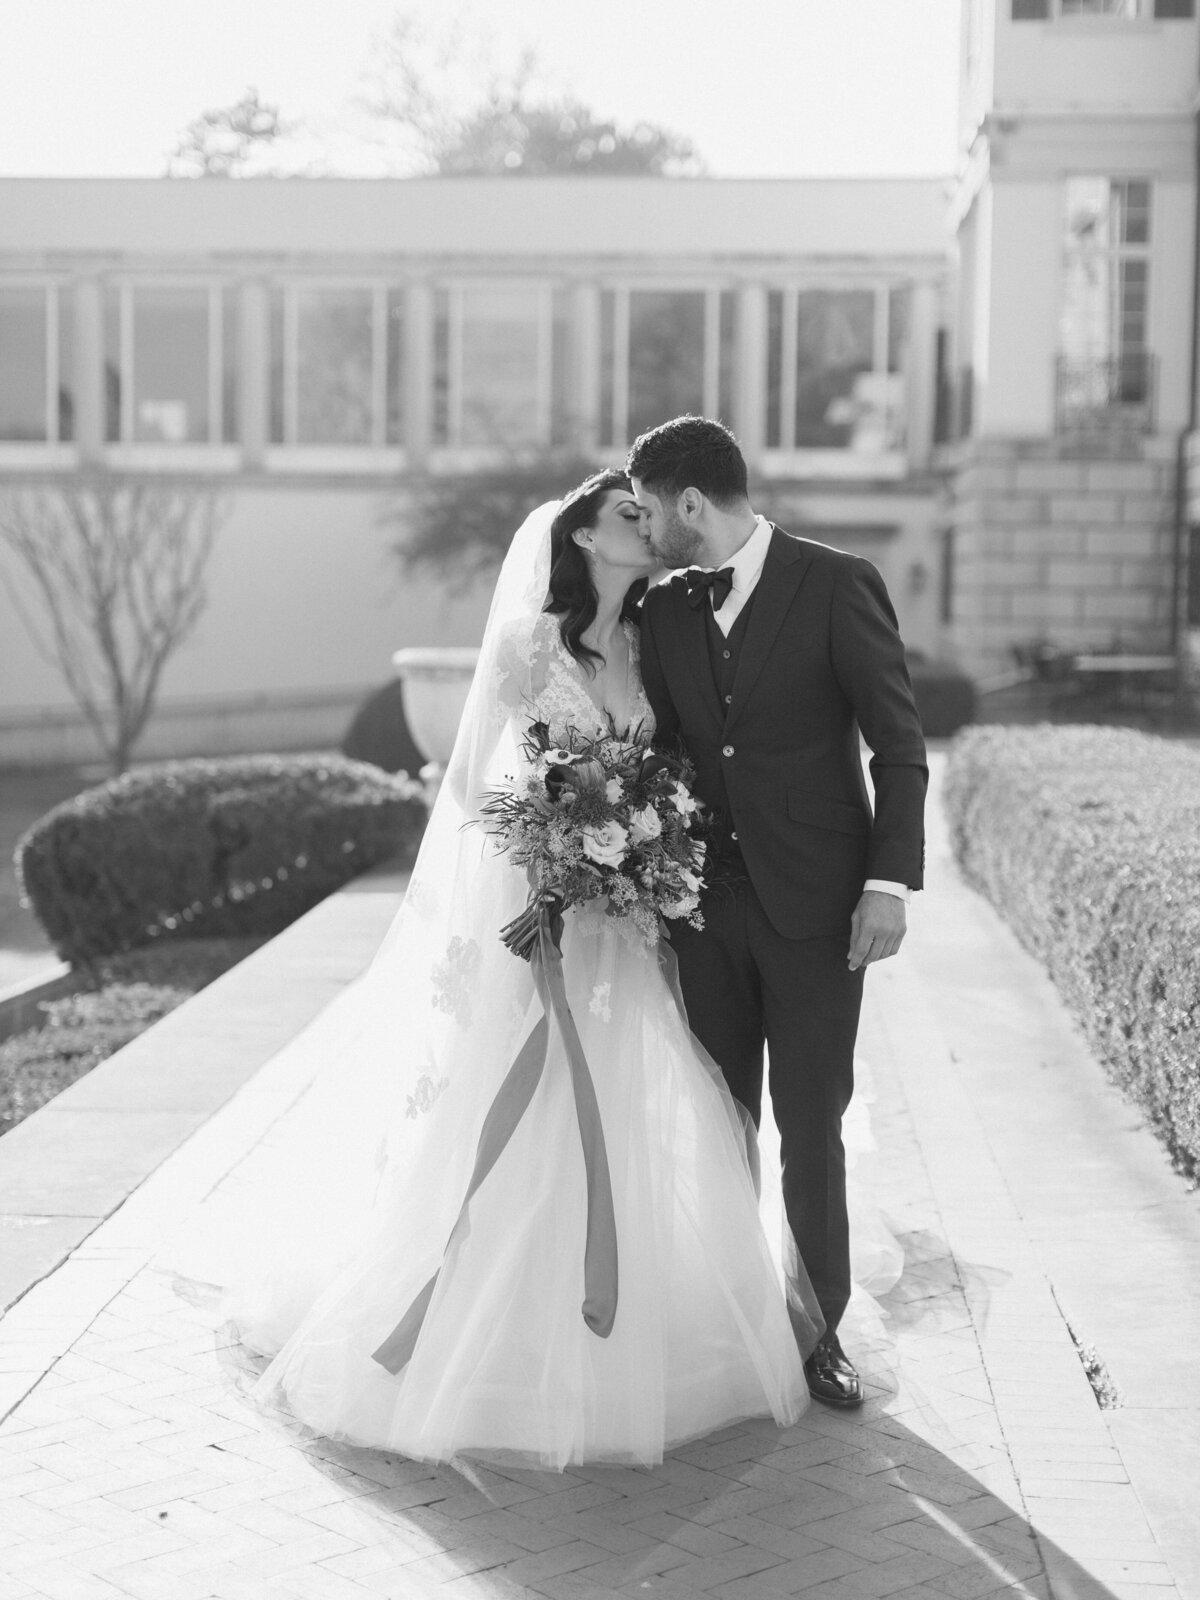 Kaylea Moreno_wedding gallery - Rami-Cassandra-Wedding-krmorenophoto-177